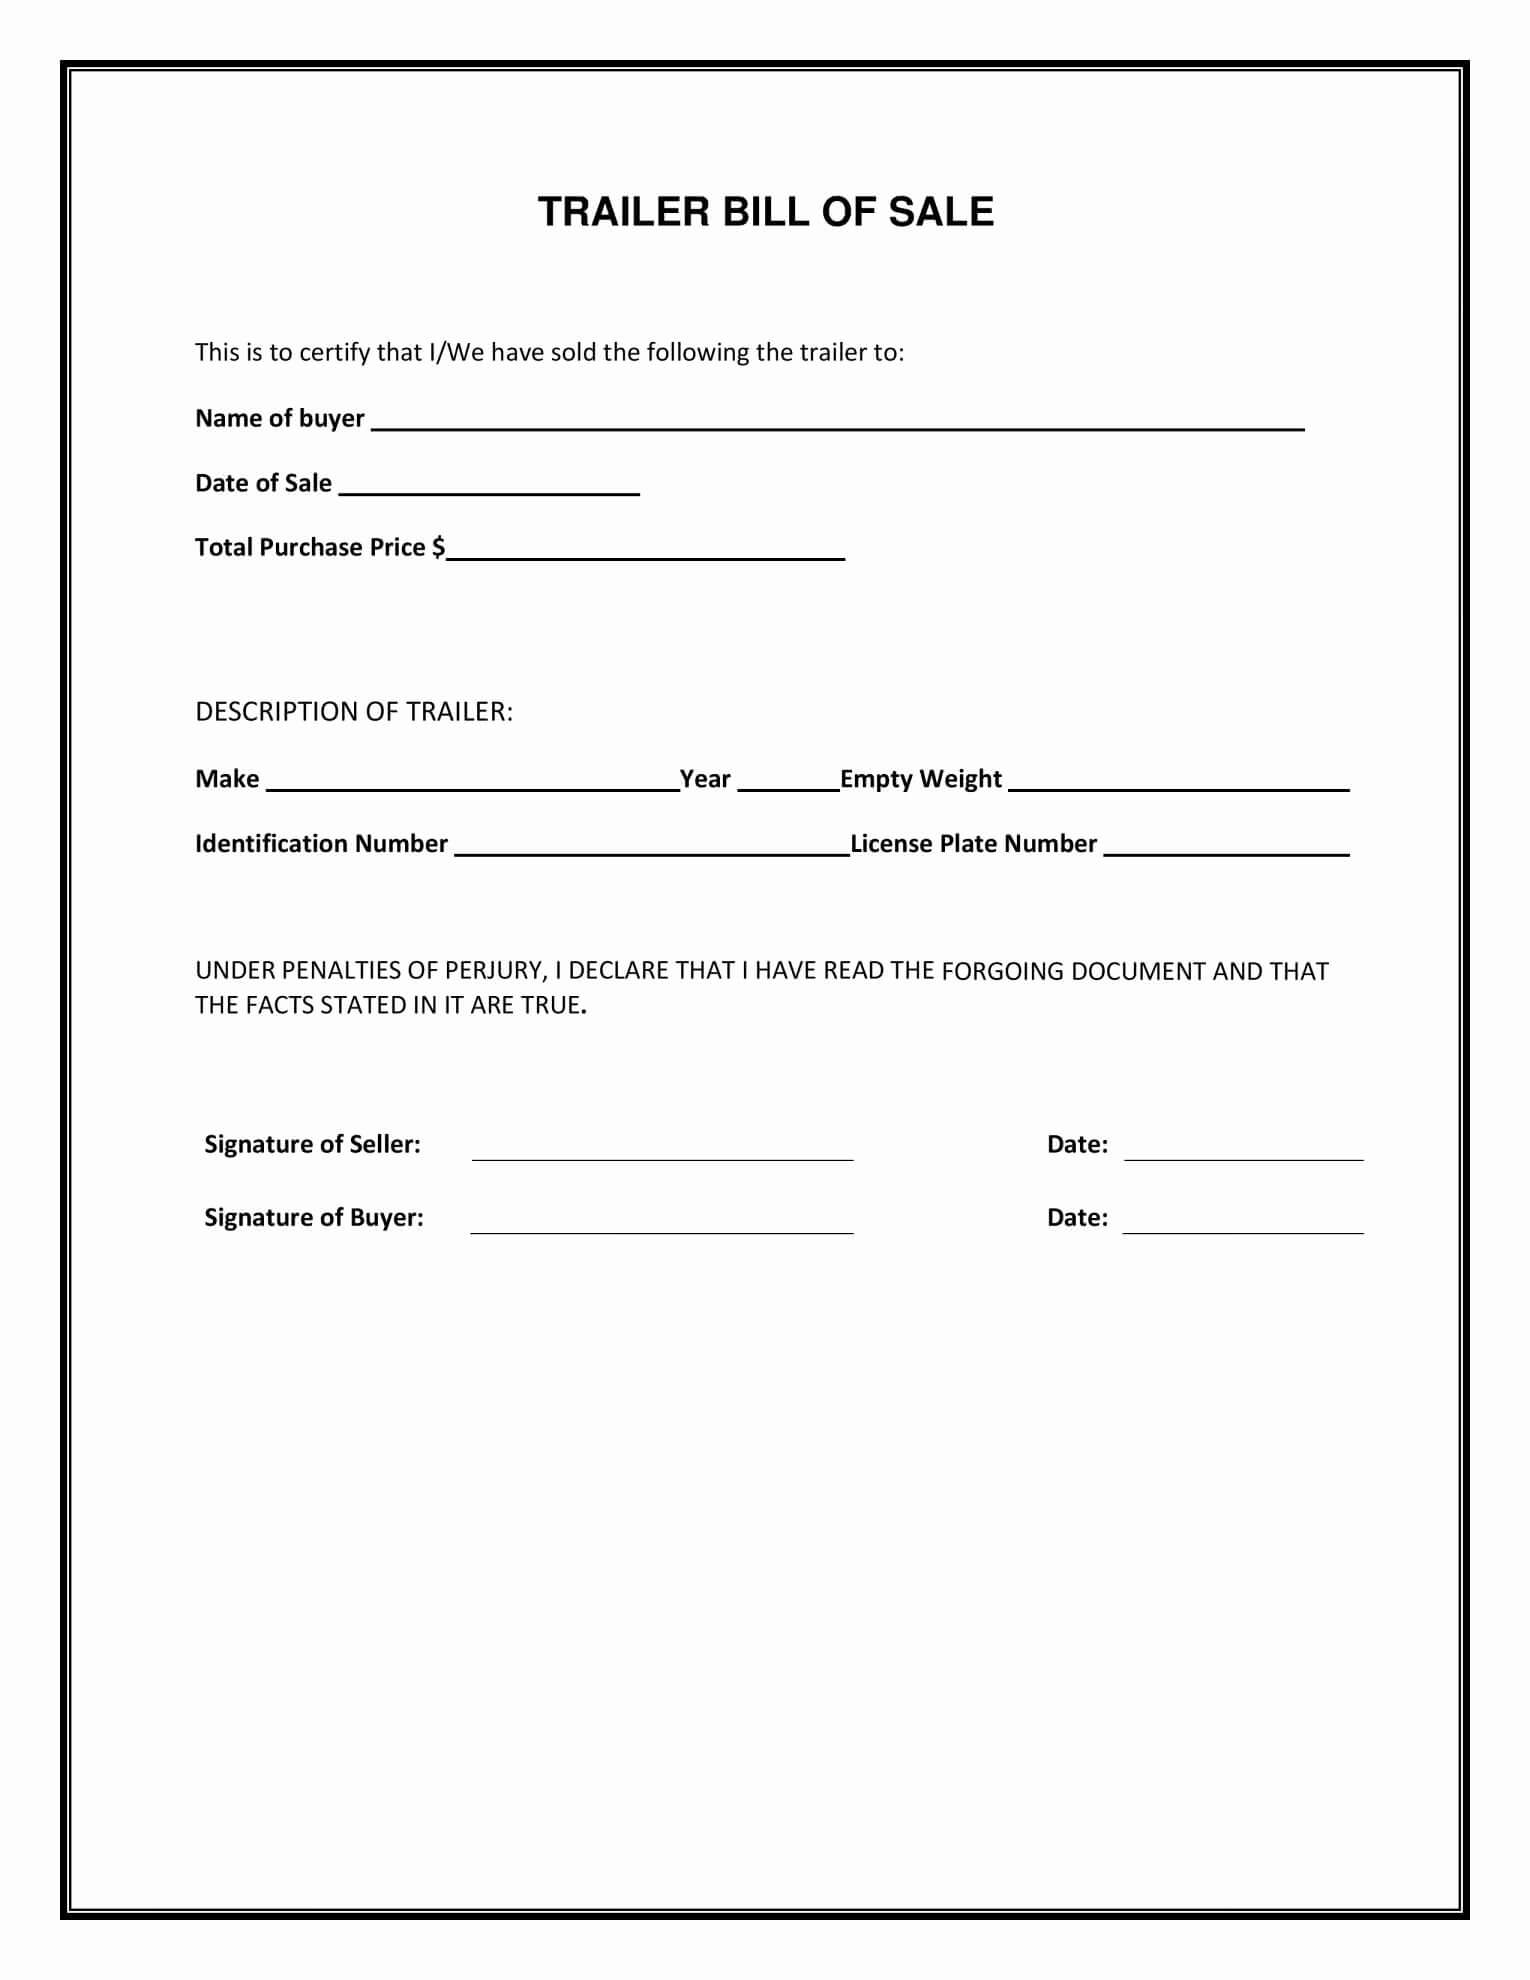 Free Printable Bill Of Sale For A Car Blank Vehicle Form Pdf for Vehicle Bill Of Sale Template Word